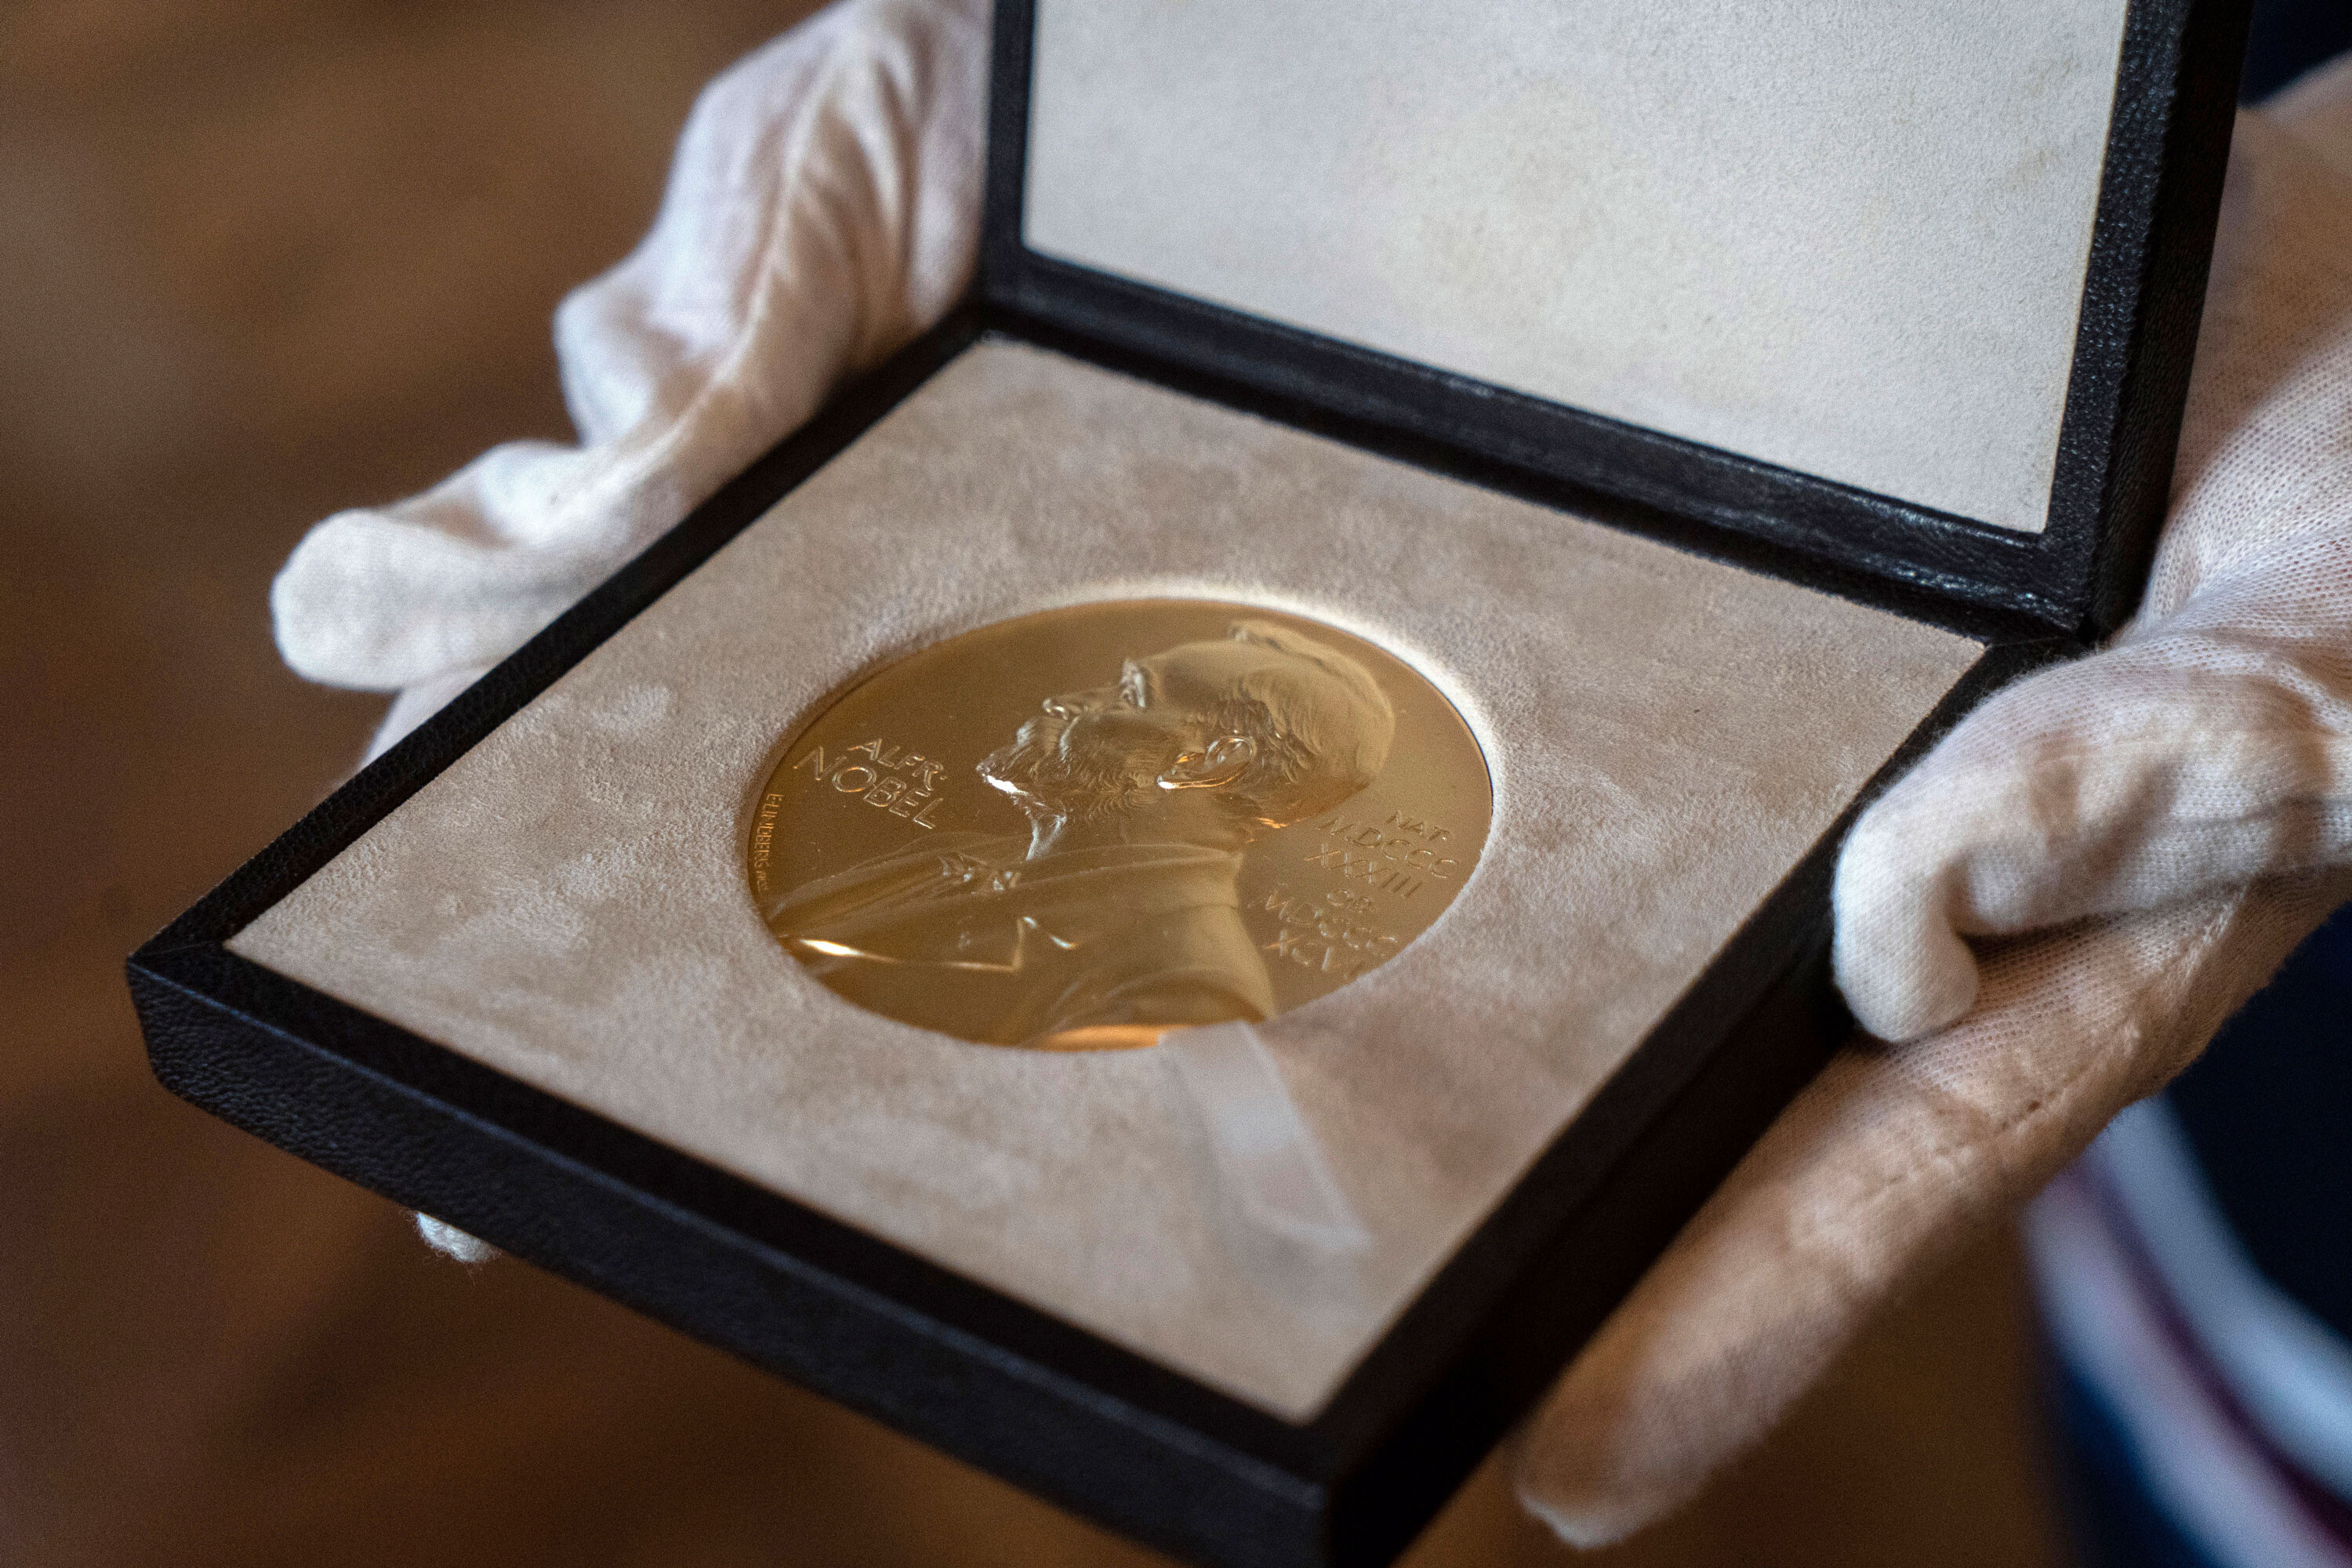 Nobel Prize in physics awarded to scientists whose work warned the world of climate change